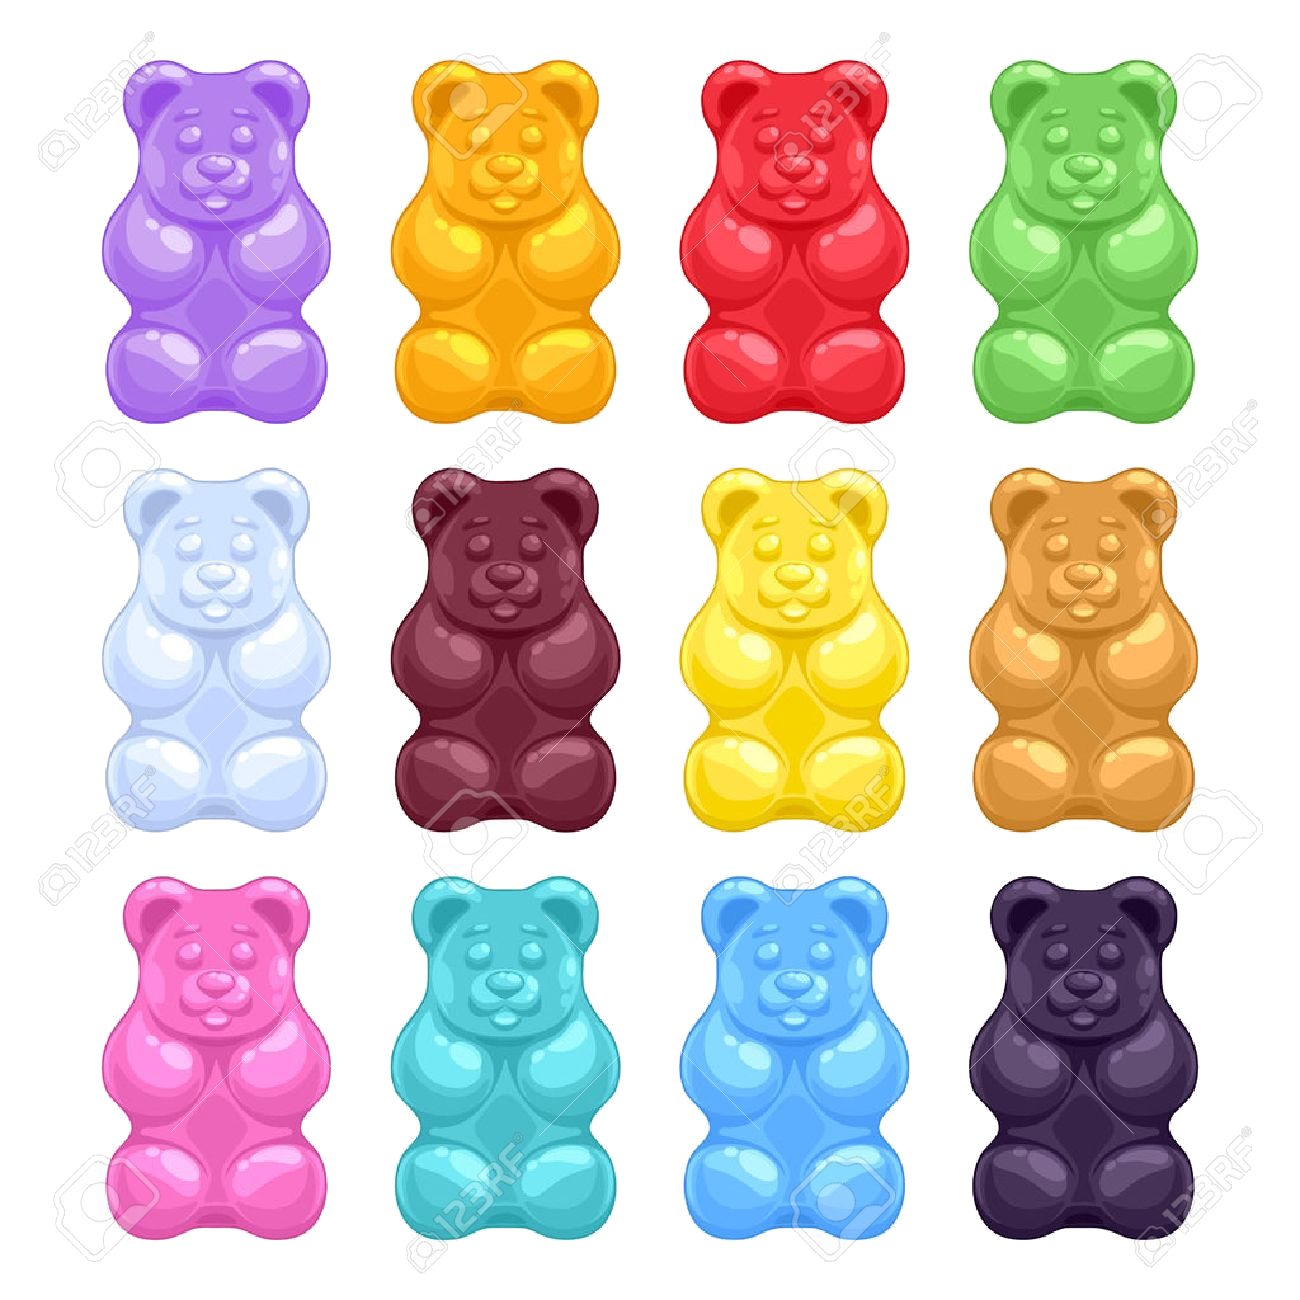 clip art royalty free download Gummy bear clipart. Bears transparent png azpng